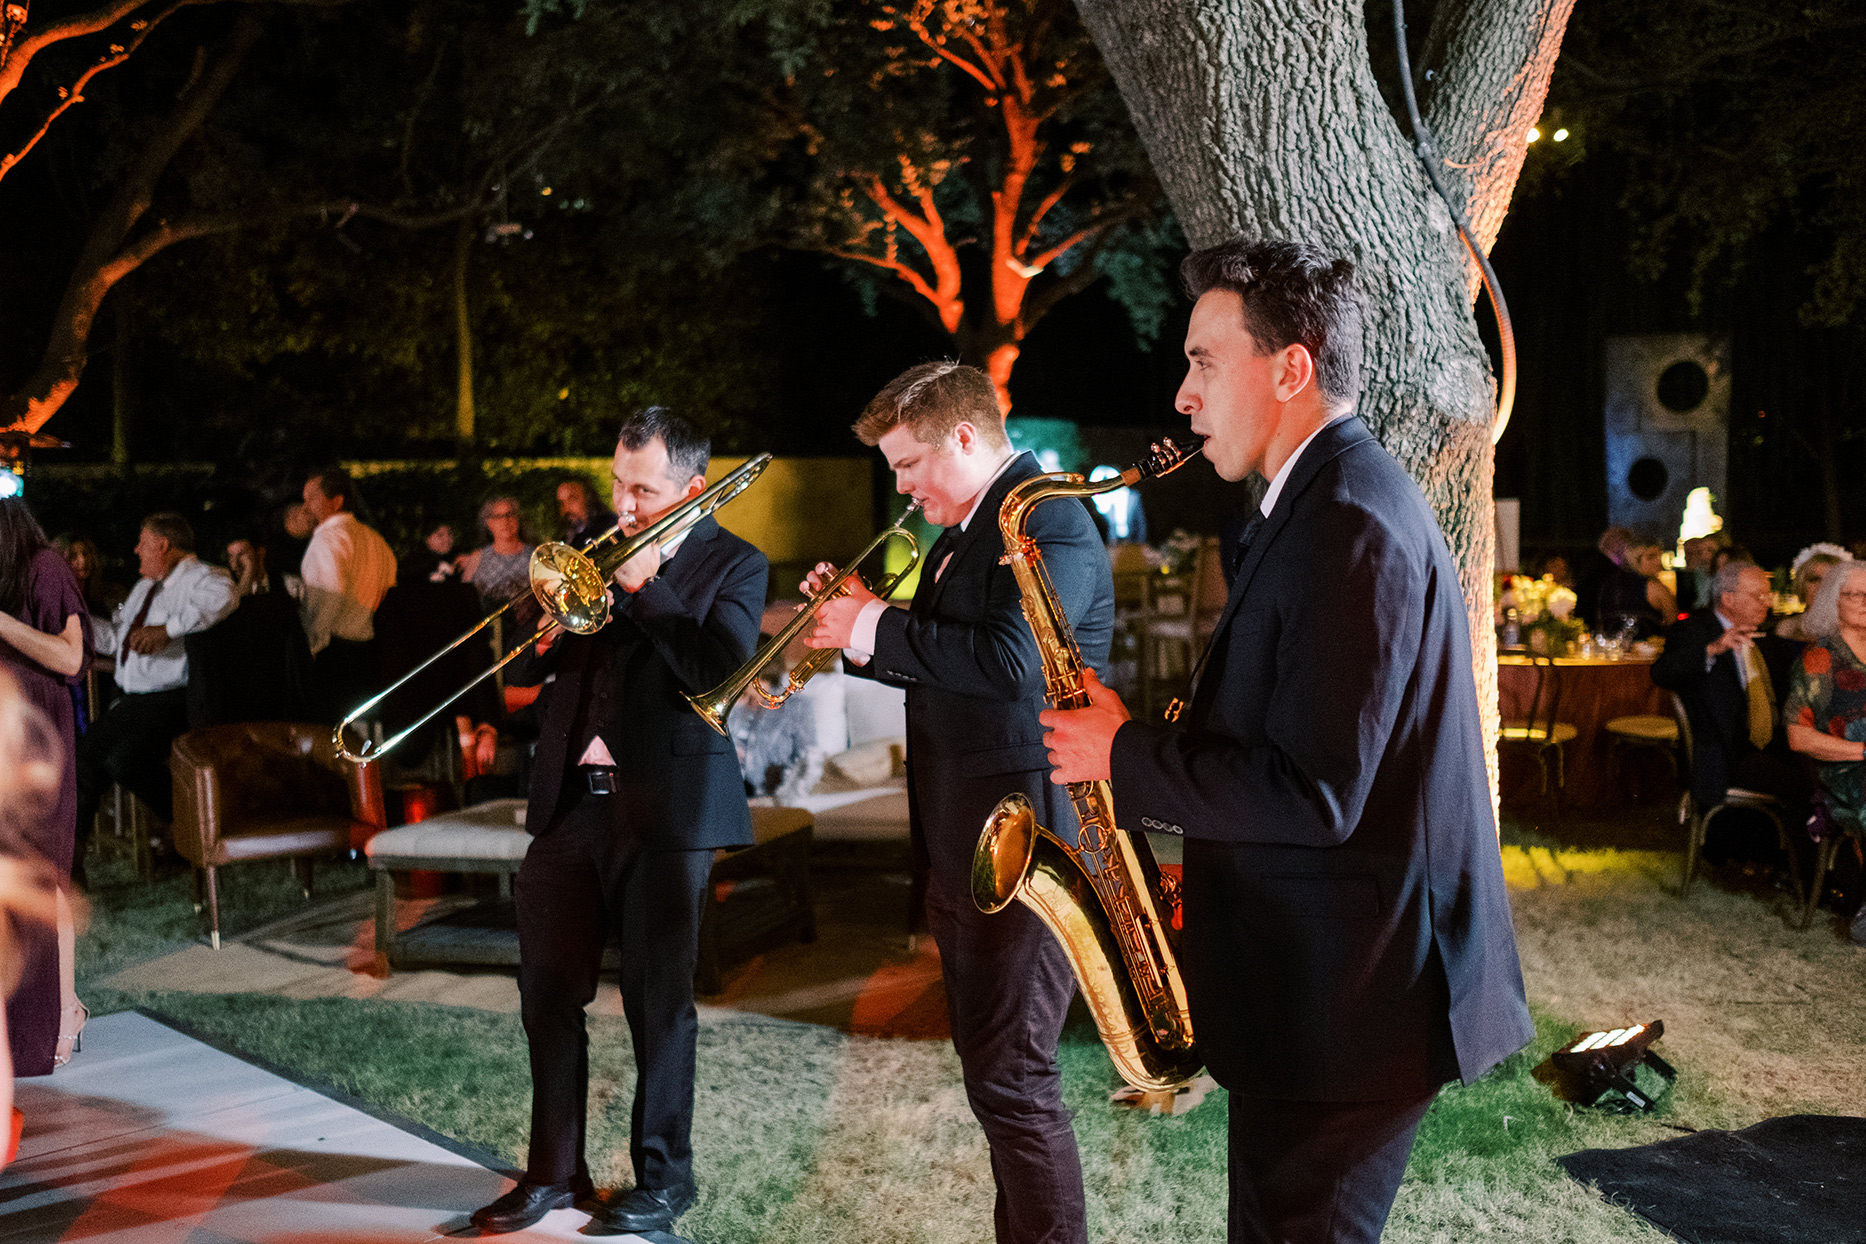 wedding band playing brass instruments outdoors at reception